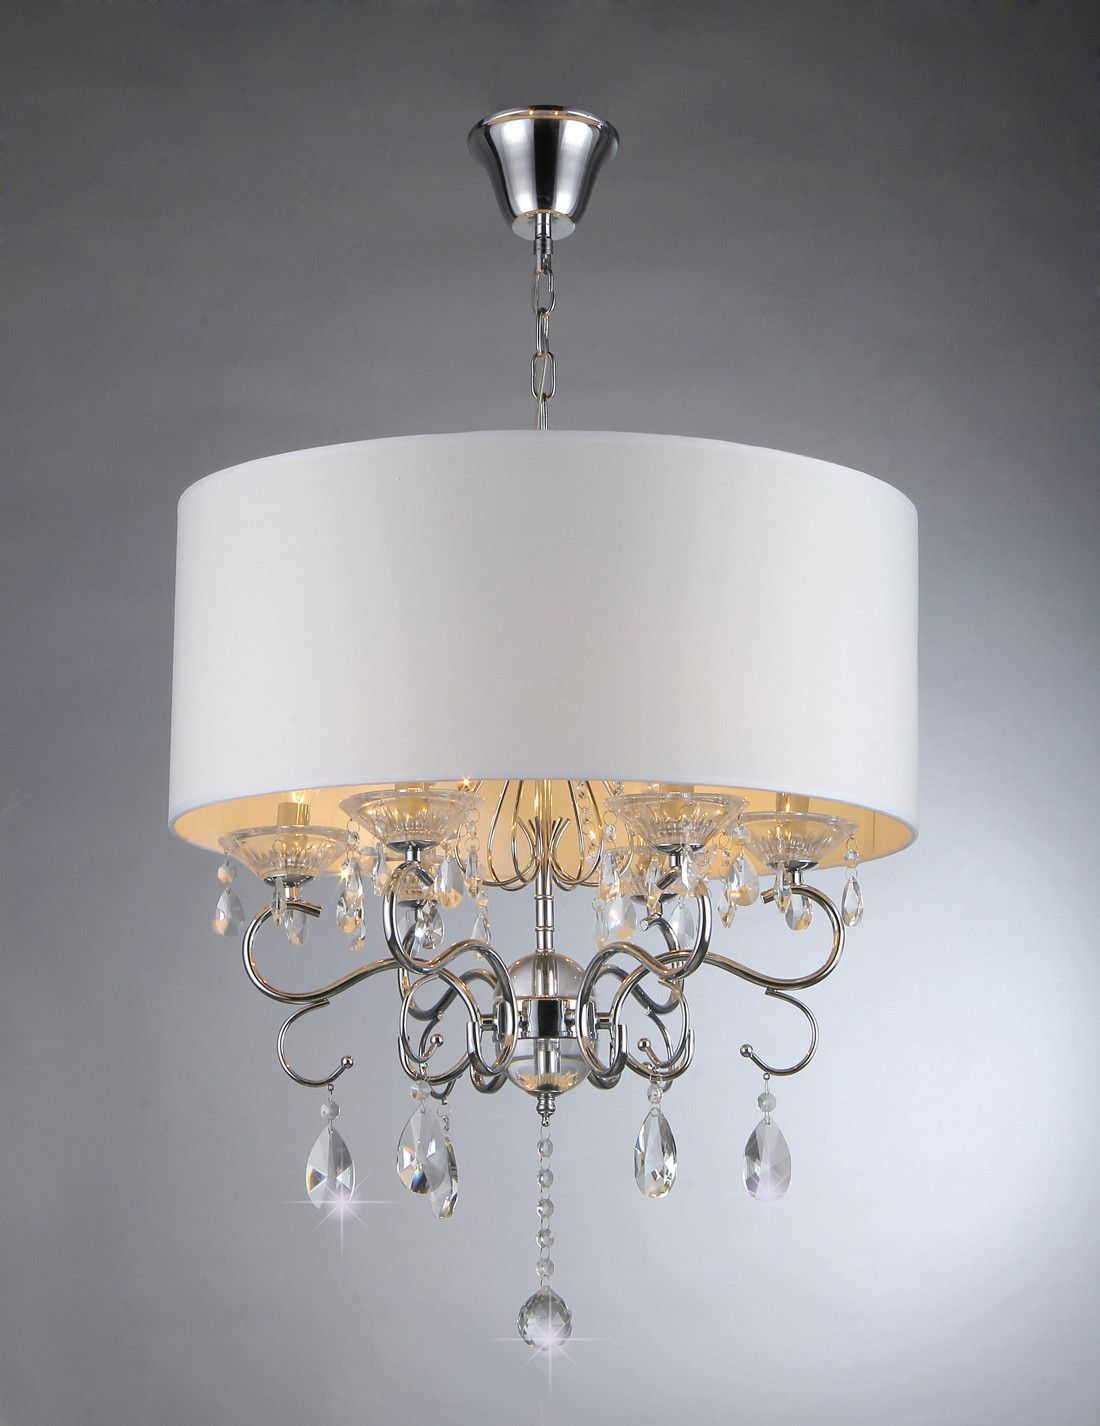 Warehouse Of Tiffany Chandelier Ceiling Lights Silver White